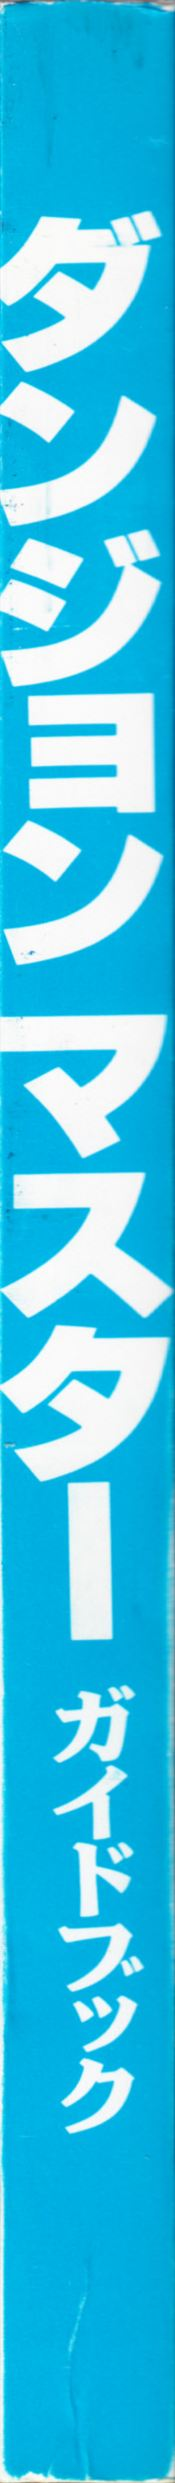 Hint Book - Dungeon Master Guide Book - JP - Blue Cover - Cover - Left - Scan